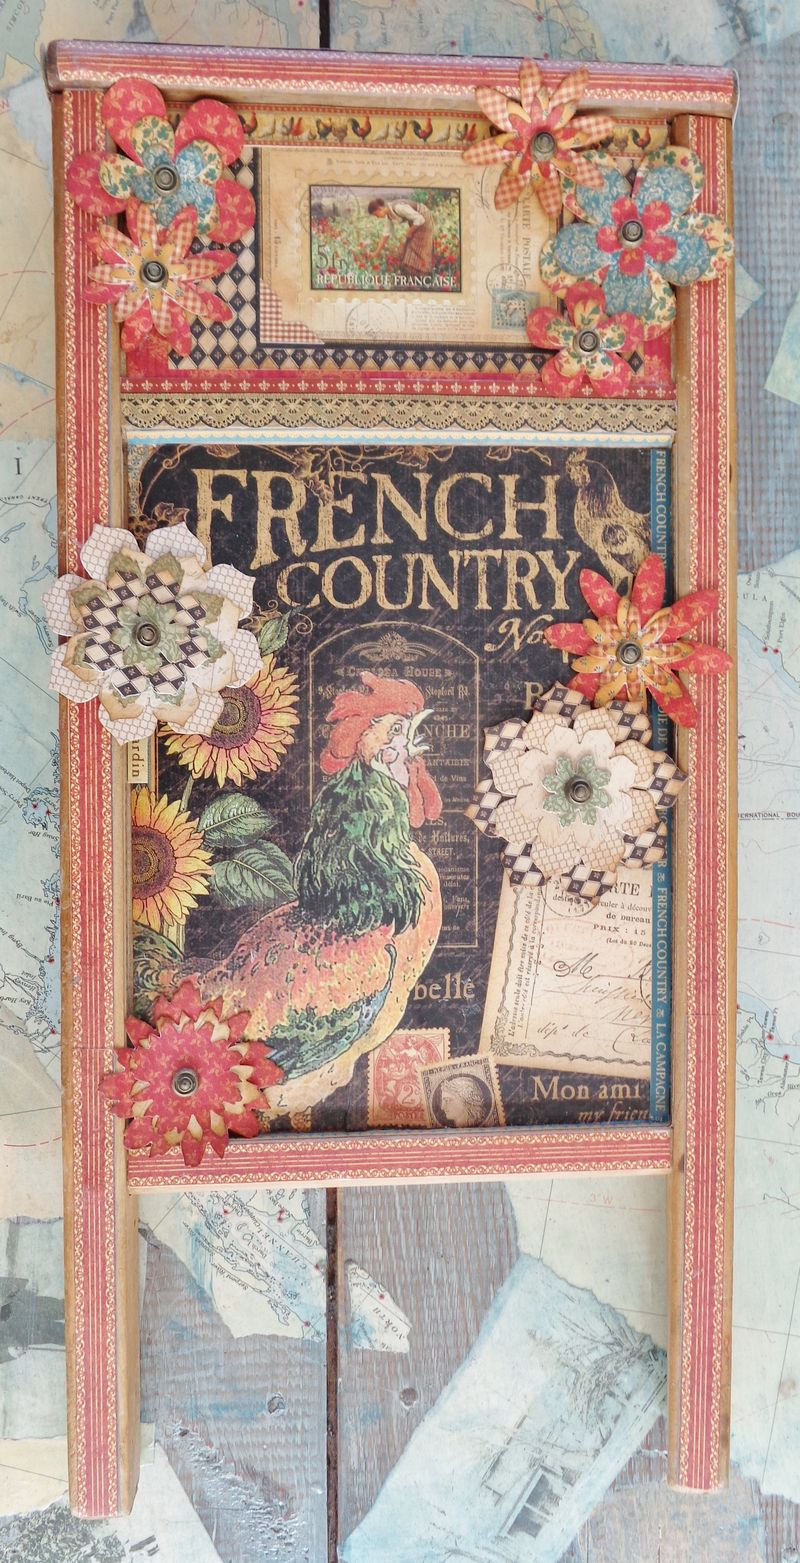 French_Country_Washboard_Rhea_Freitag_8_of_9